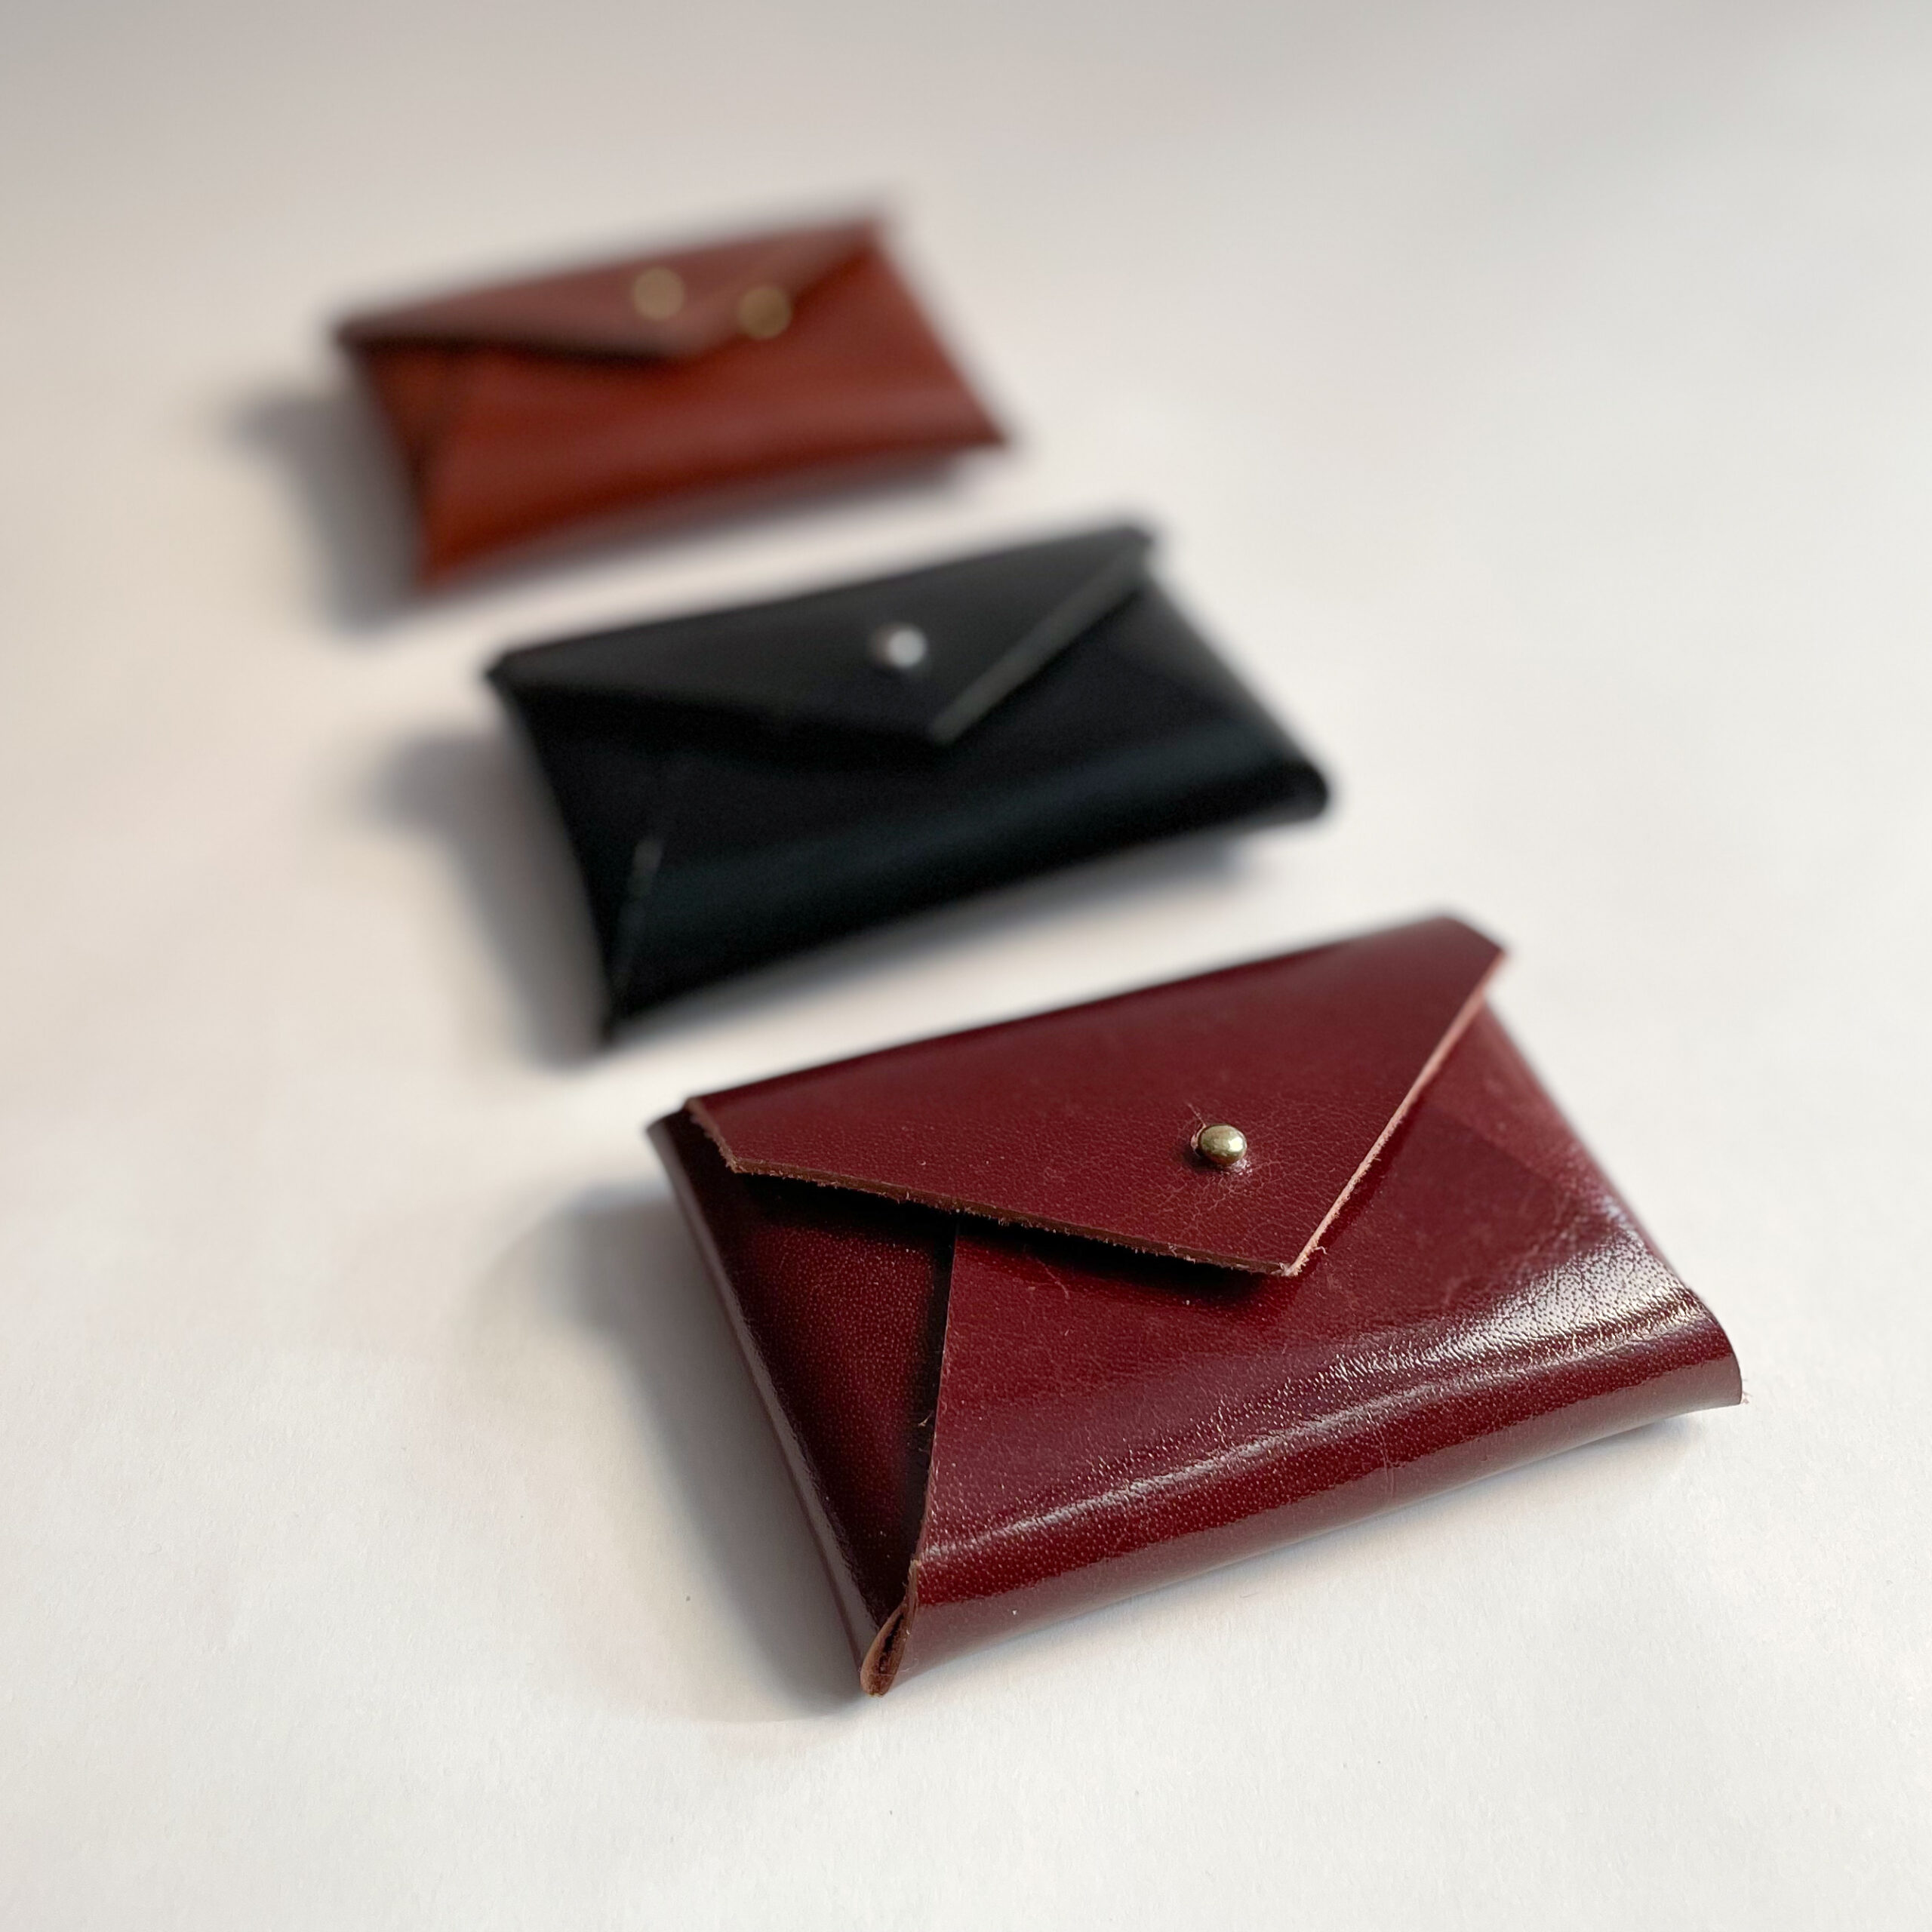 Three Leather Card Cases with the Maroon one in front